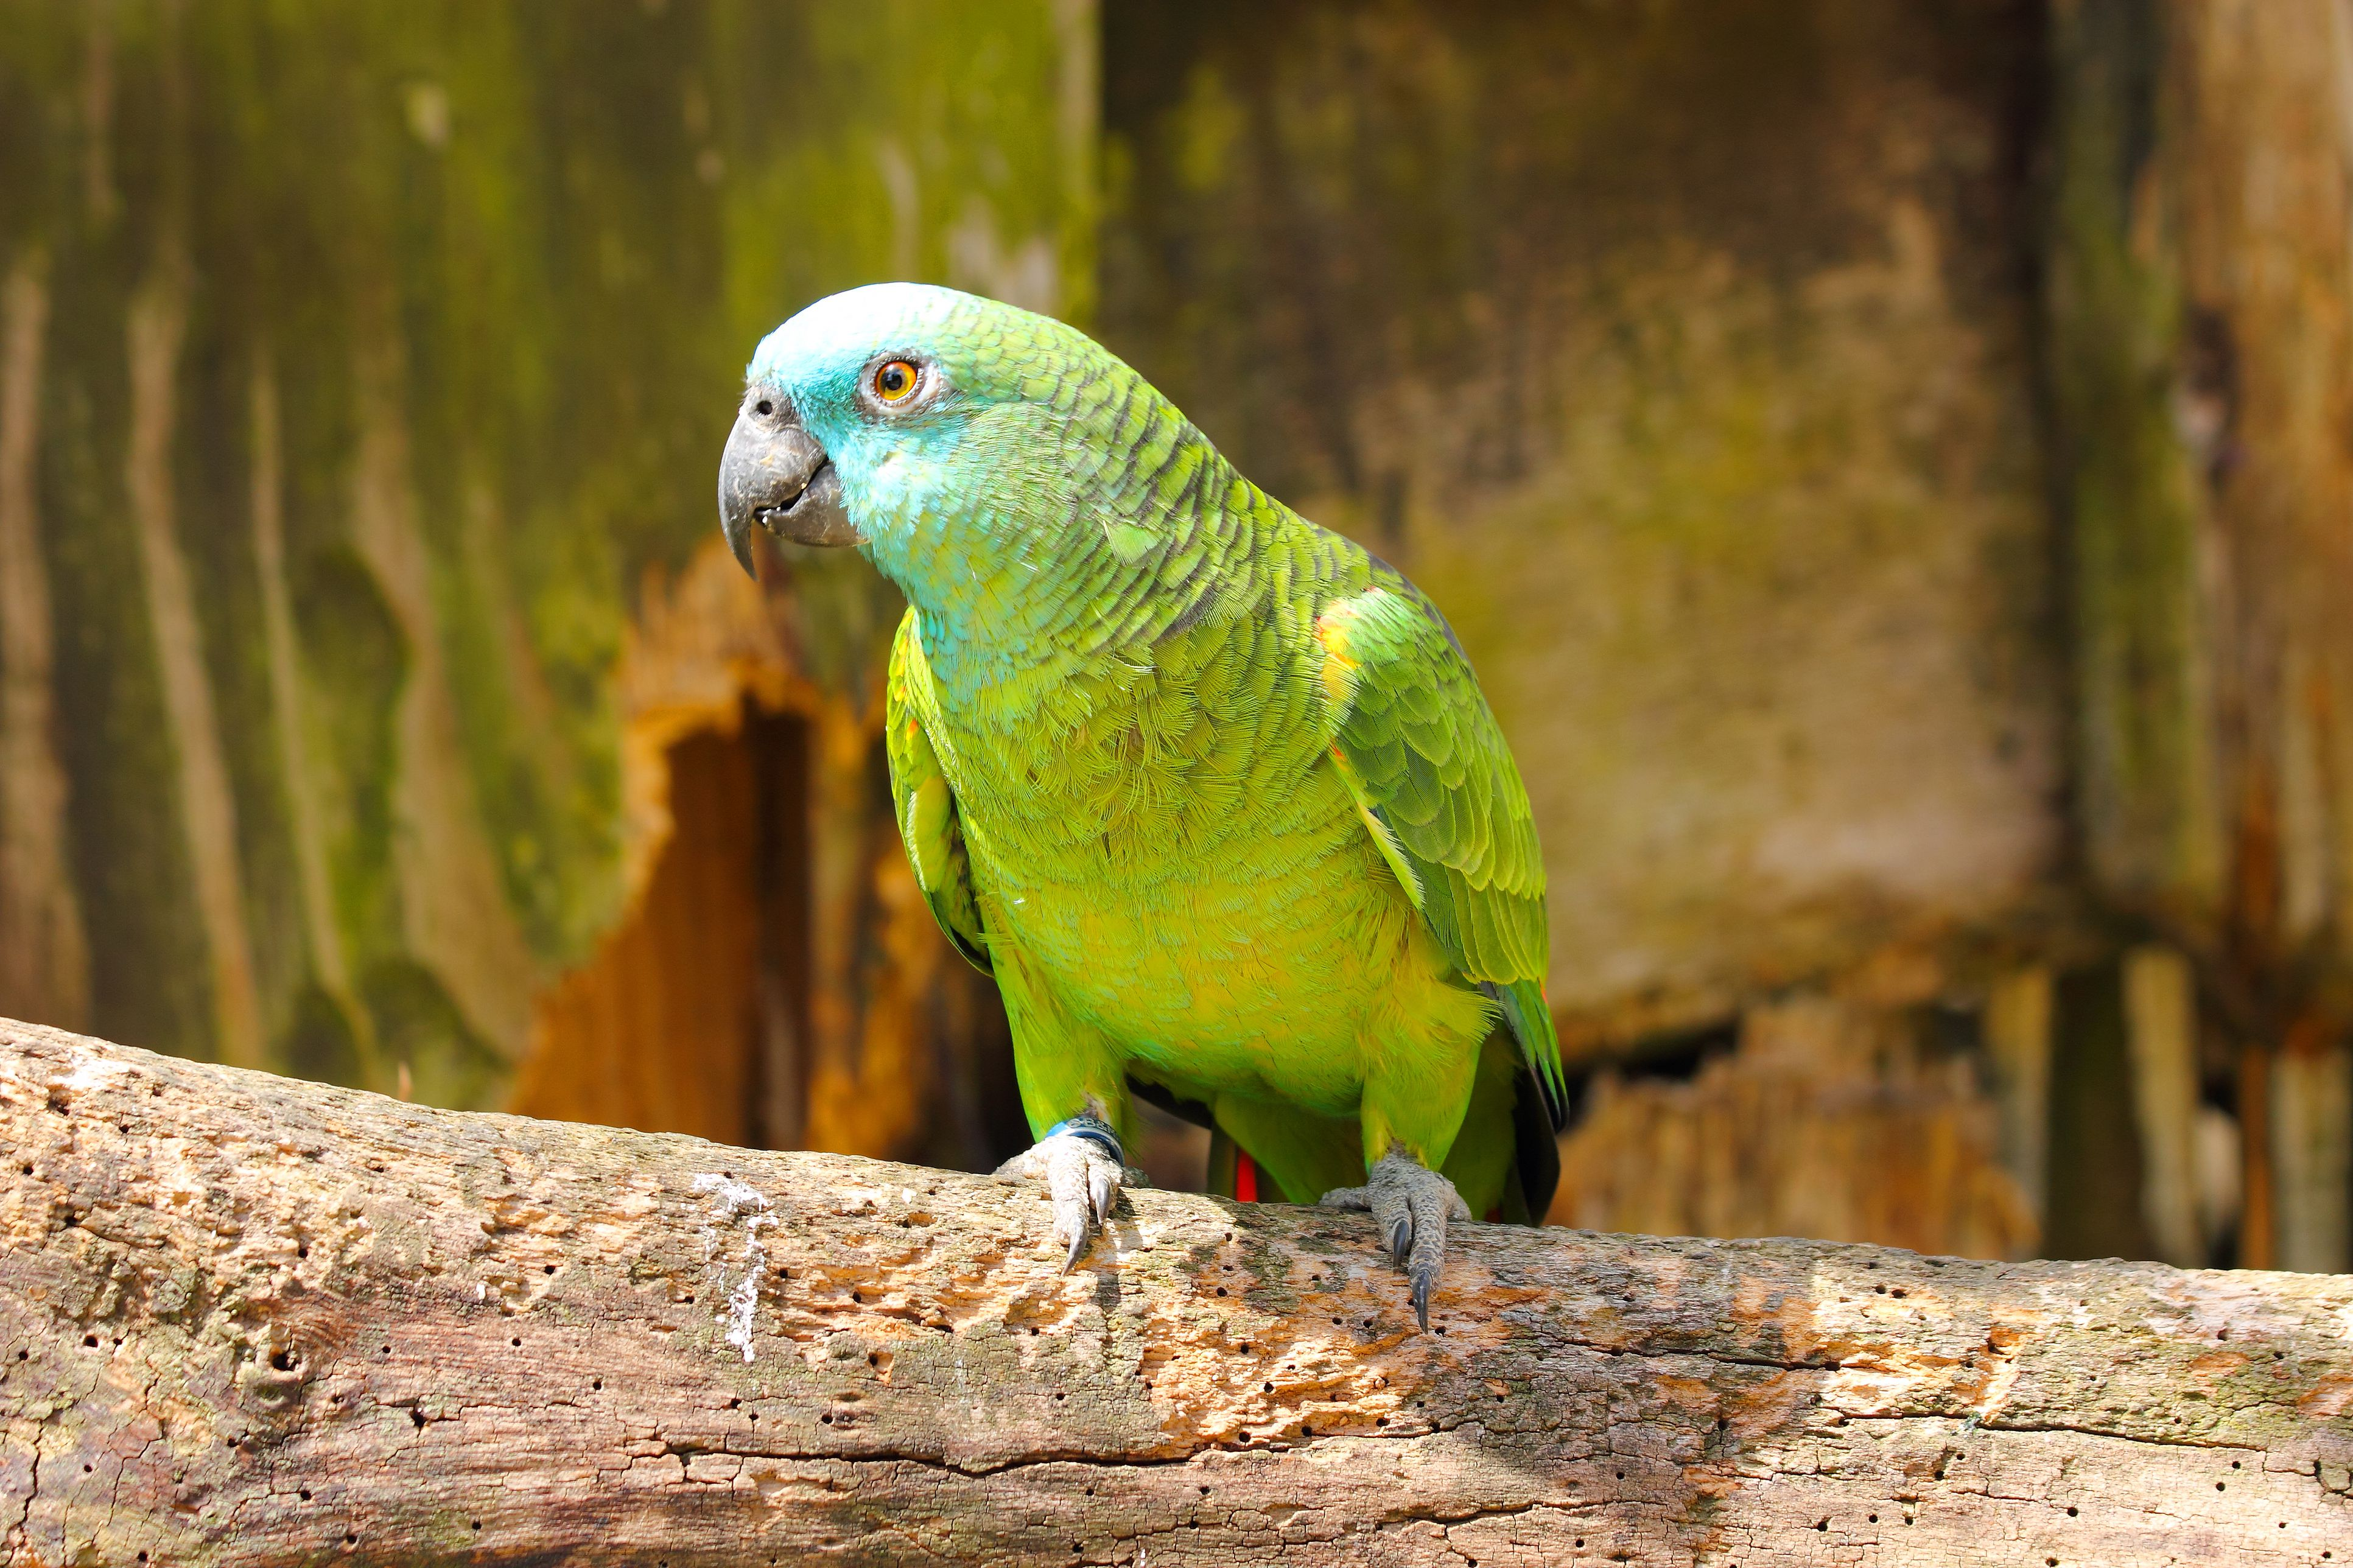 Blue-fronted Amazon on perch. Amazona aestiva